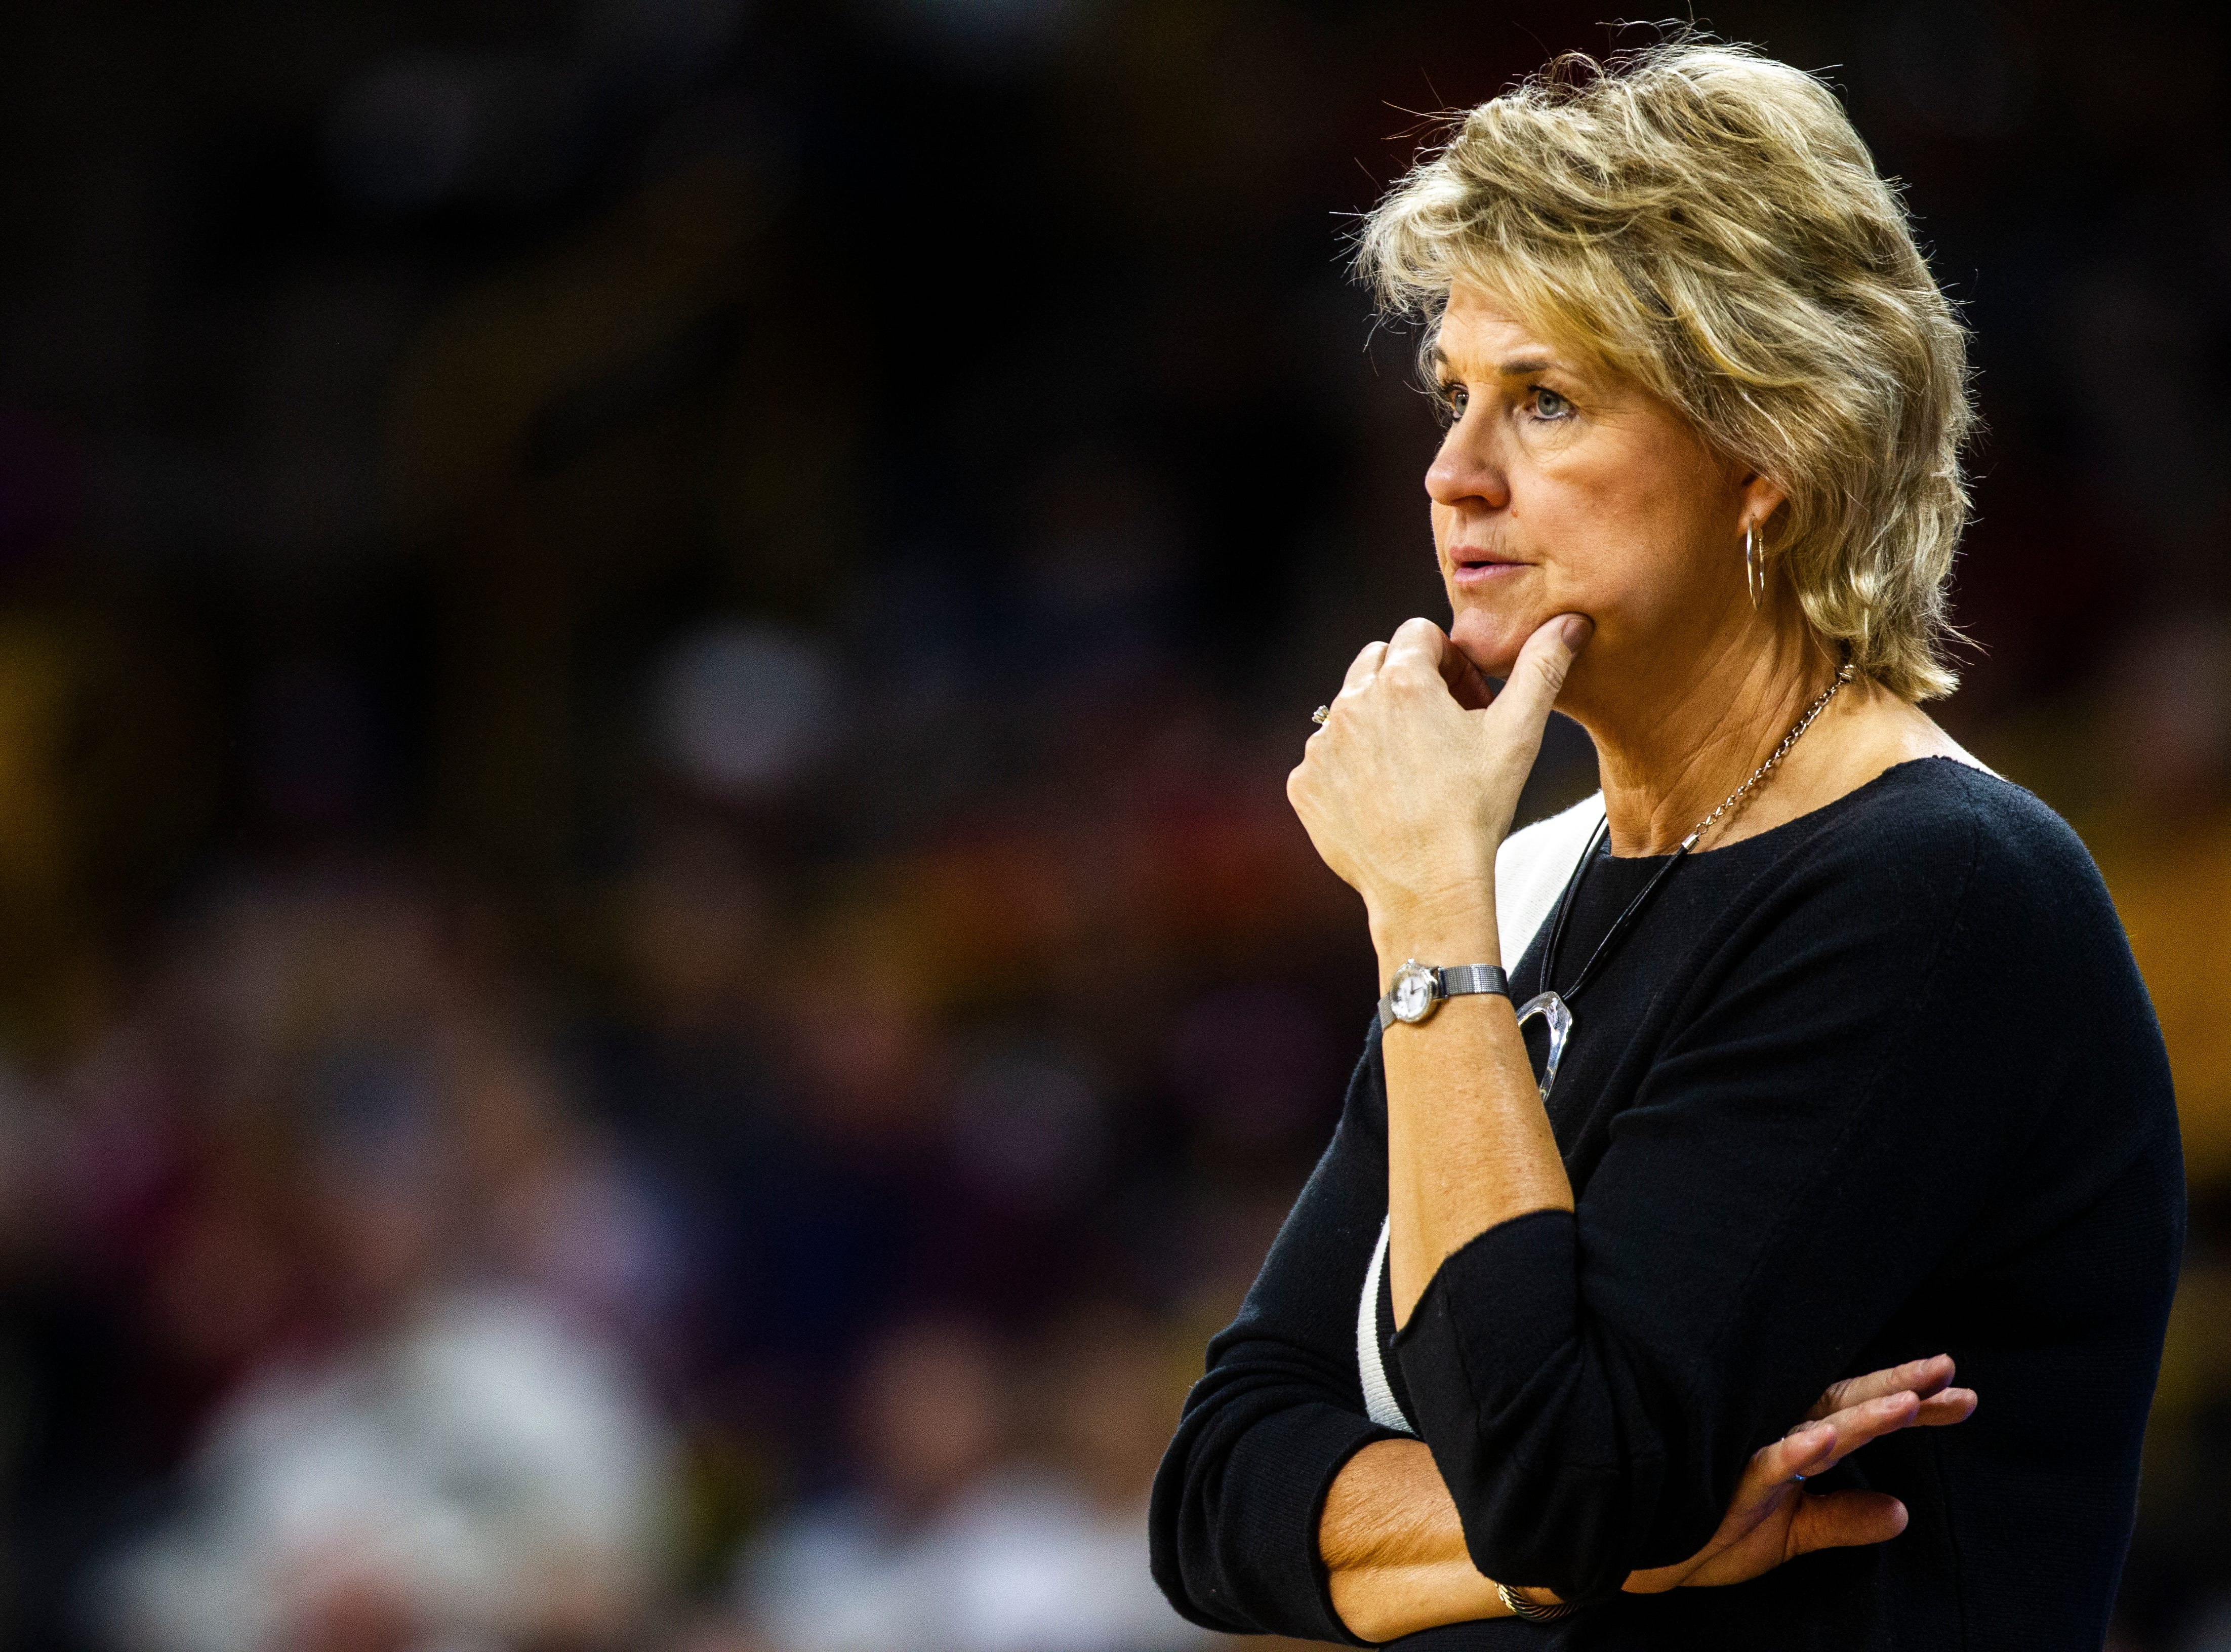 Iowa women's basketball: No. 17 Hawkeyes can't close the door in loss at Purdue